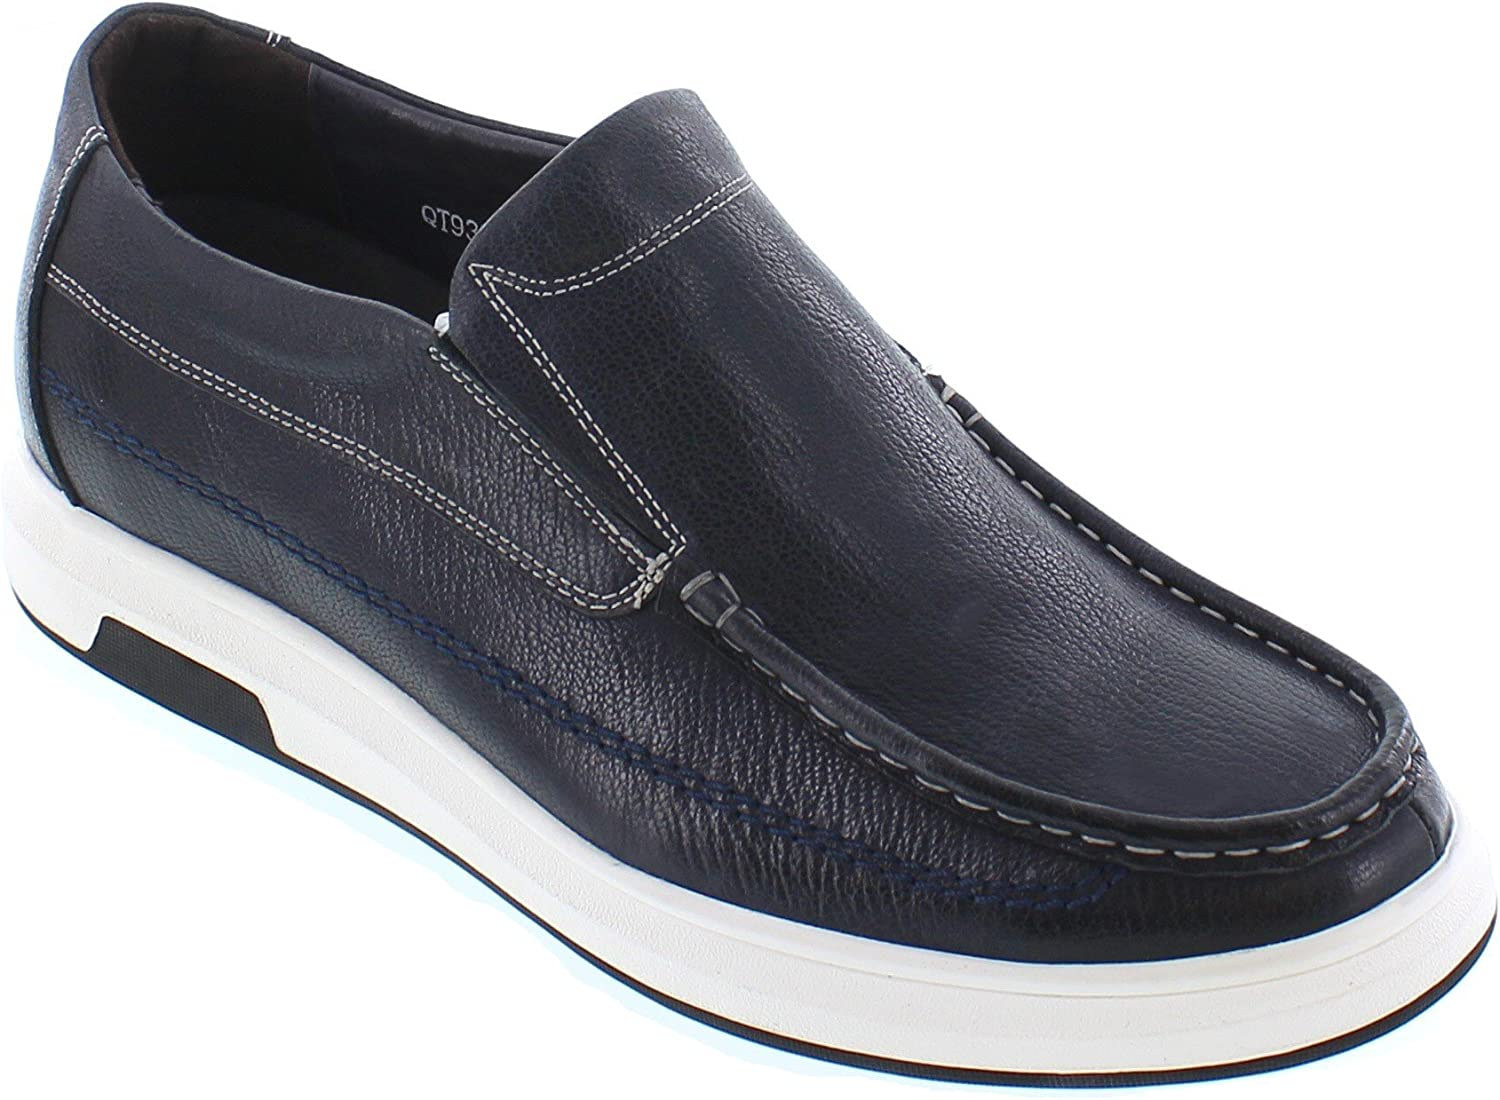 CHAMARIPA Mens Invisible Height Increasing Elevator Shoes-Black Casual Slip on Loafers Genuine Leather Breathable Driving Shoes Slipper-2.36 inches Taller